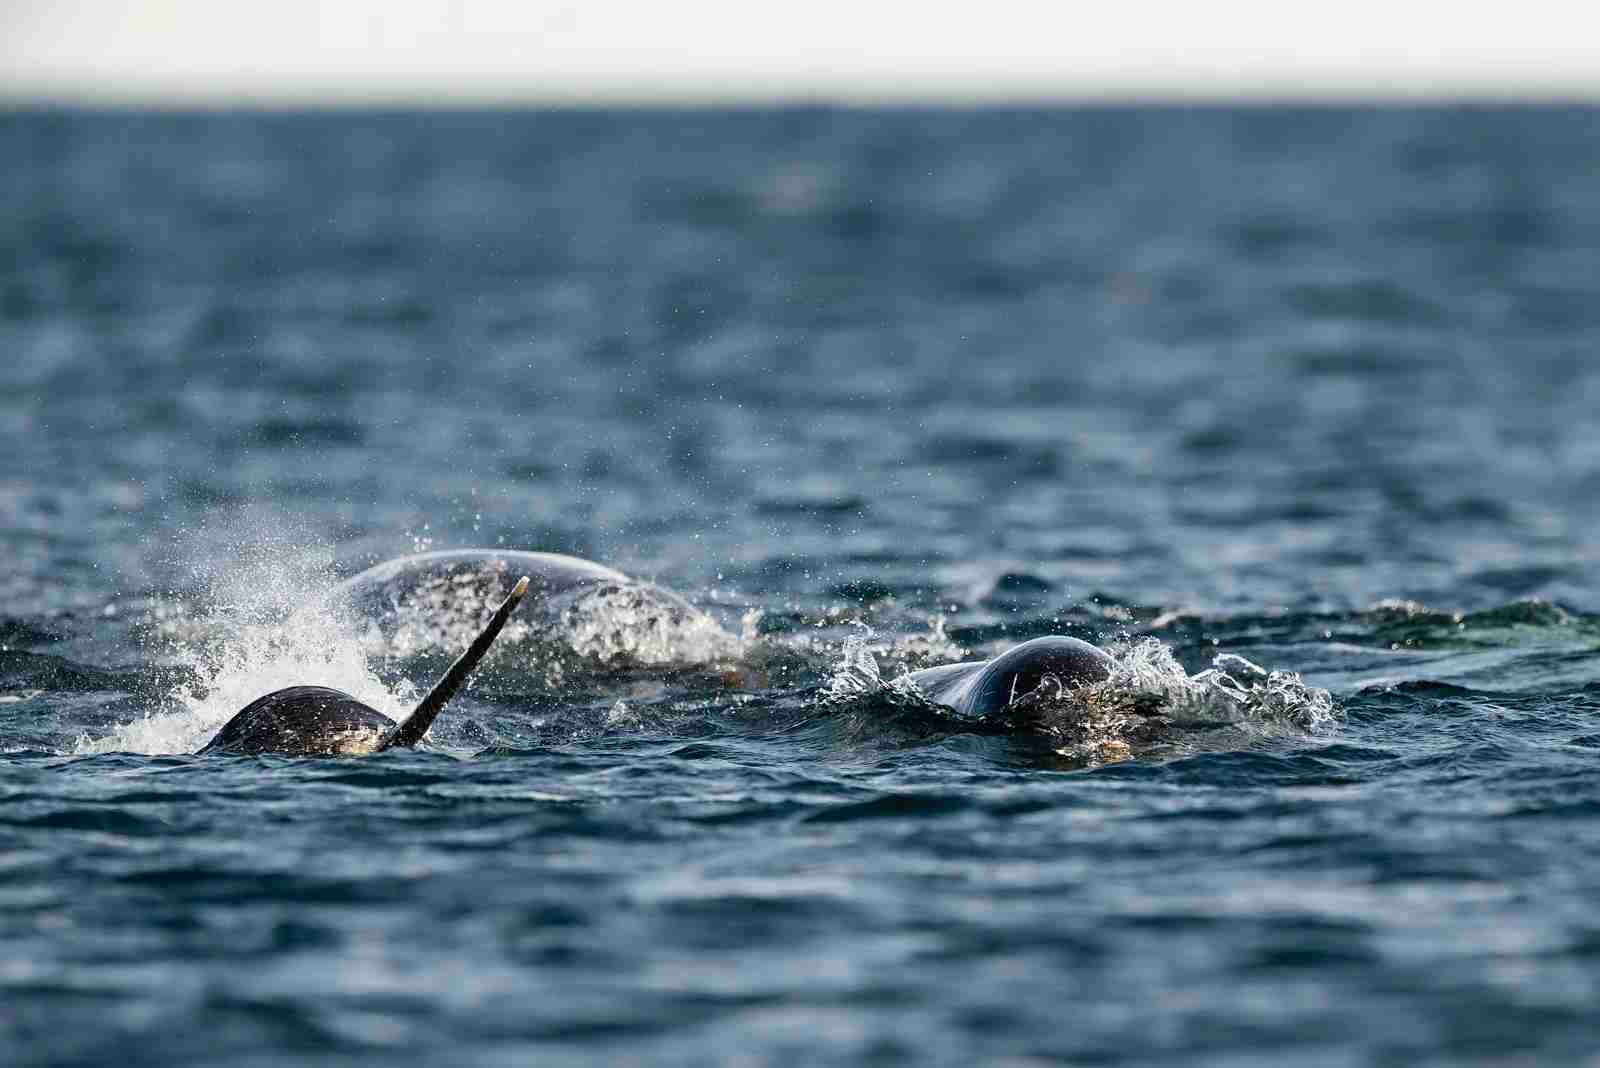 Narwhals spotted in the Arctic Ocean. (Photo via Getty Images)